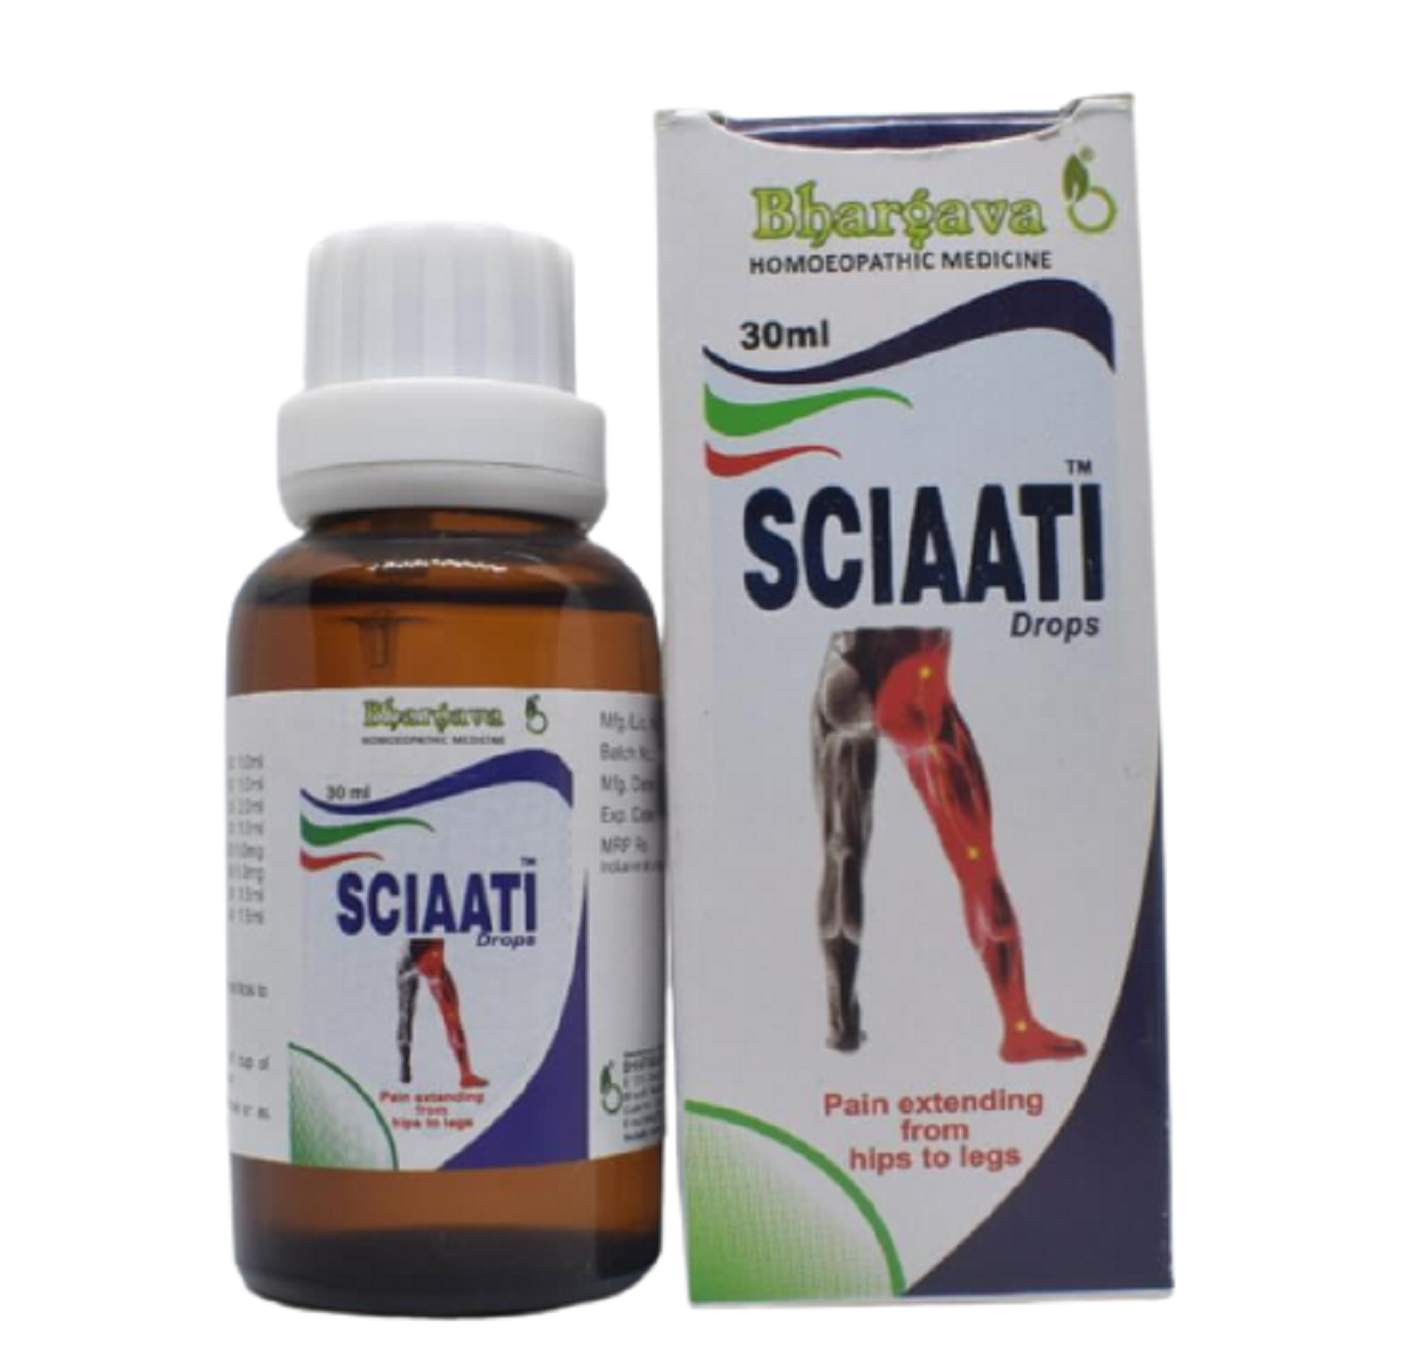 Sciaatii Minims Pain Relief Drops style=